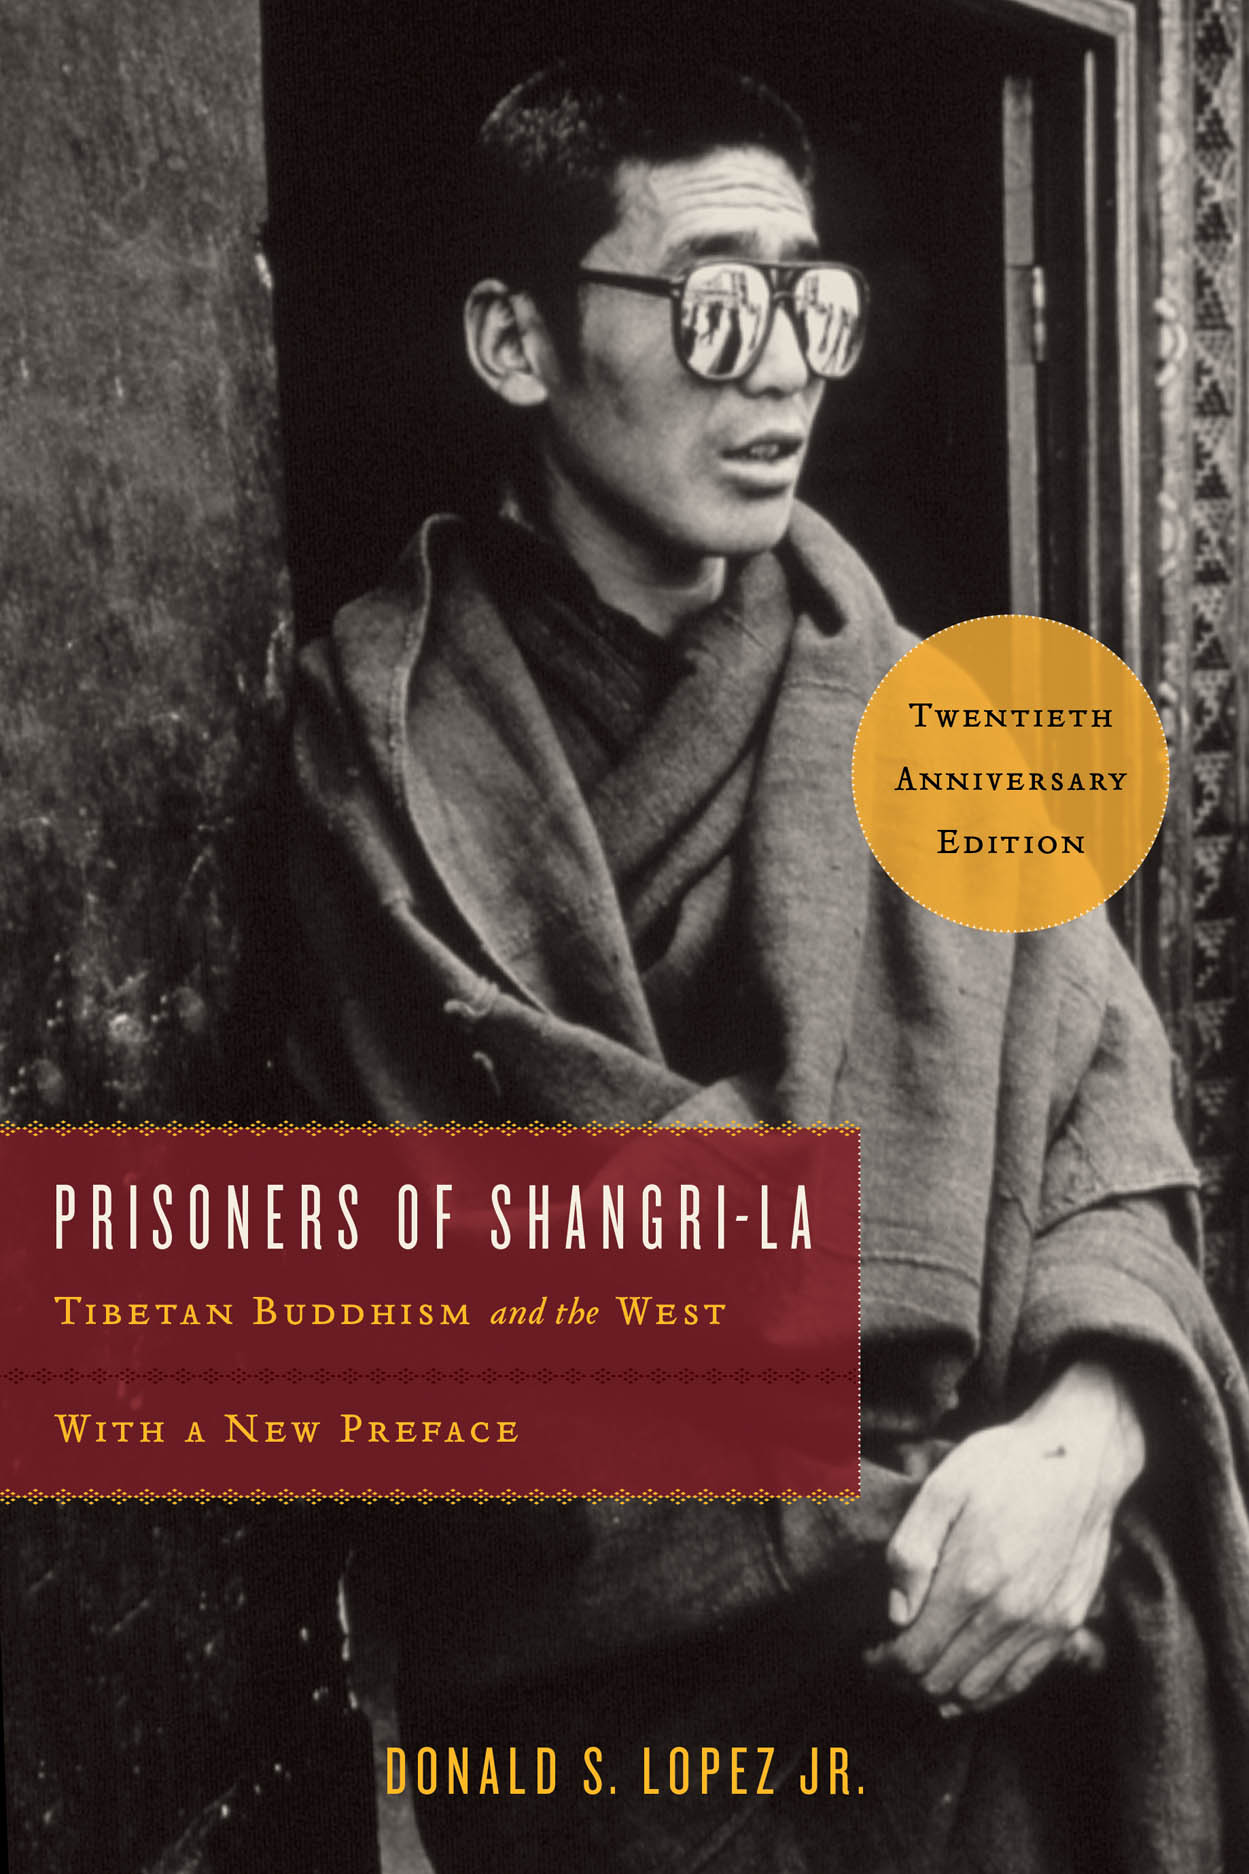 Prisoners of Shangri-La